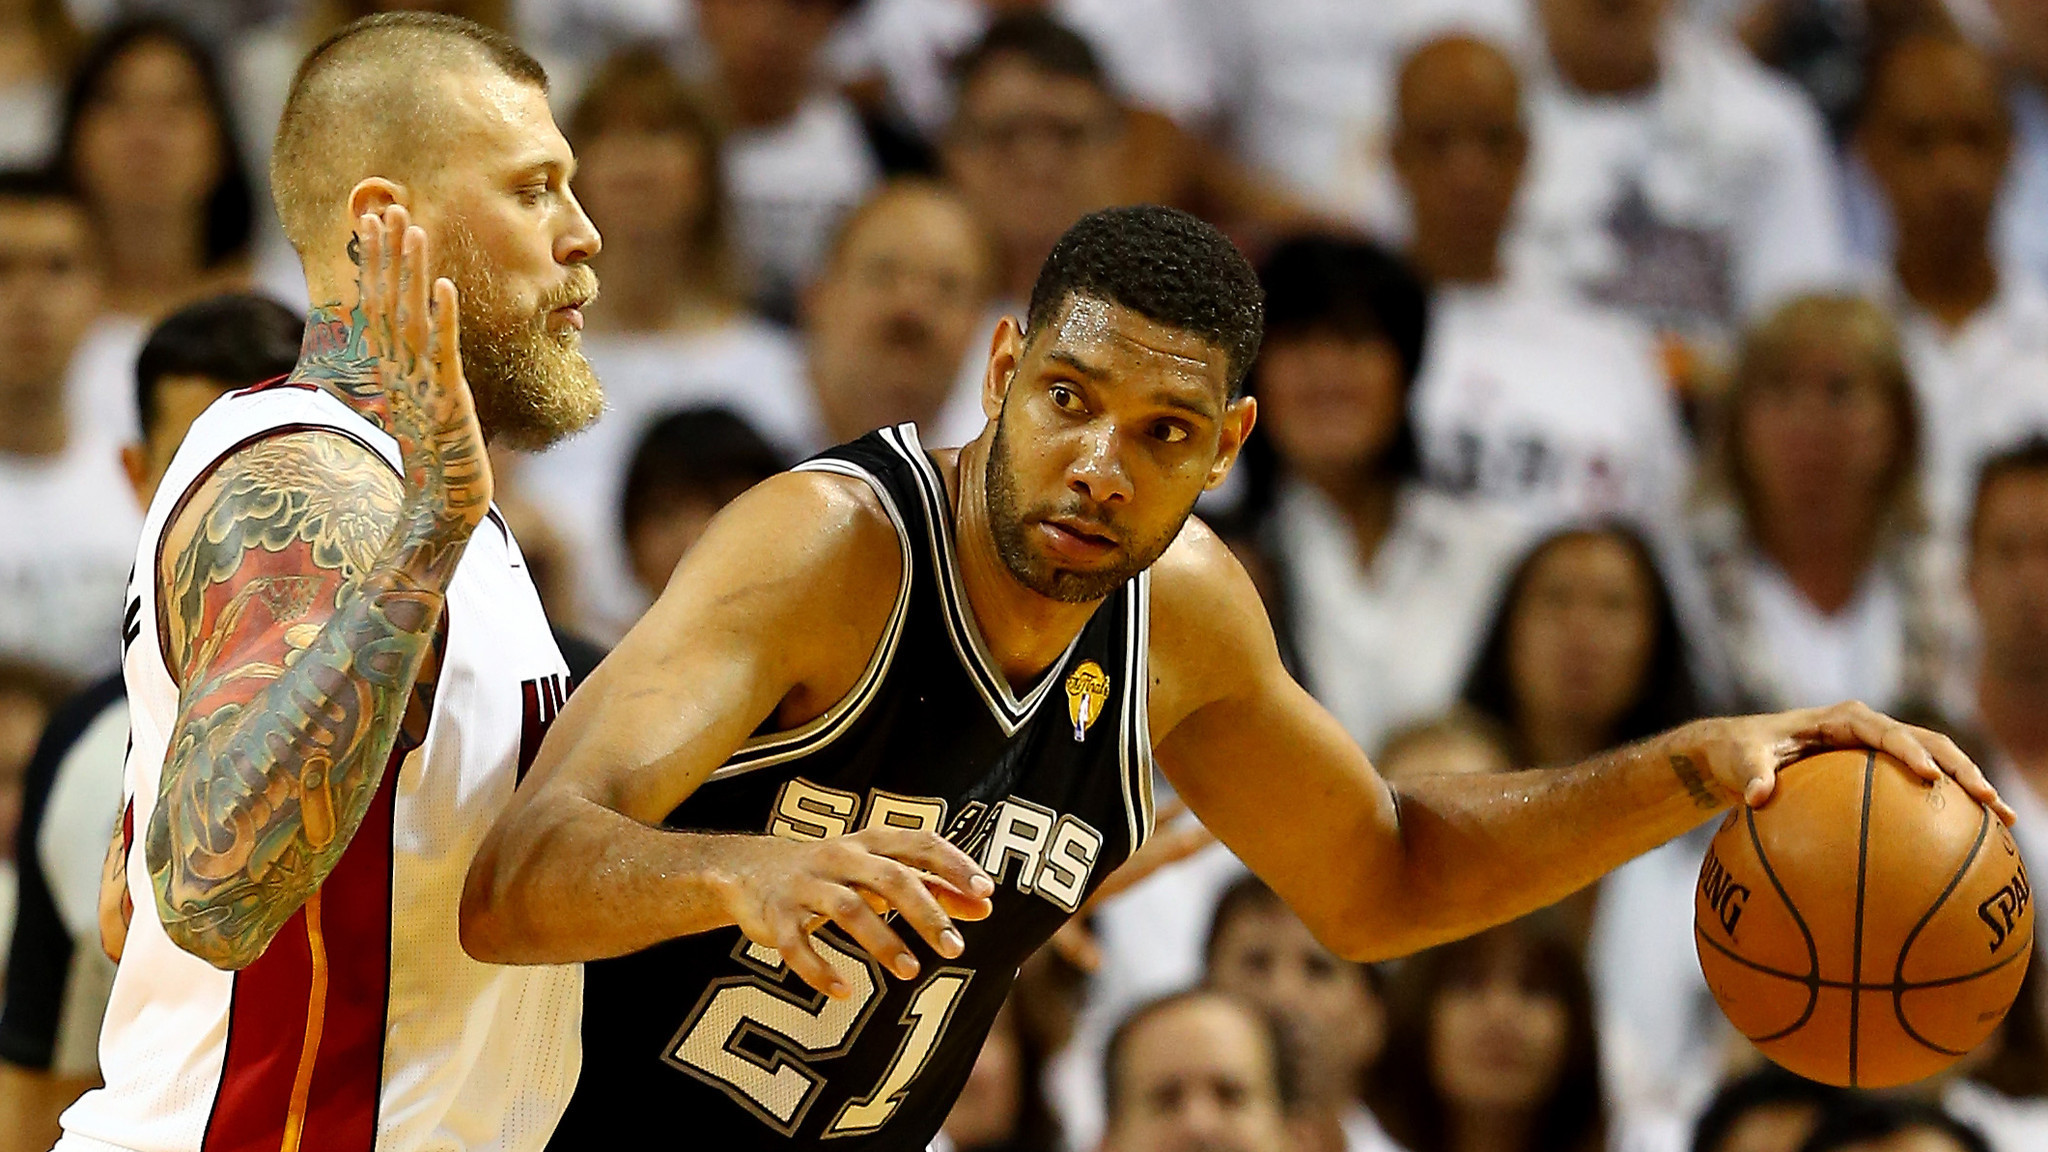 Spurs turn up heat, with their shooting, take 2-1 lead in NBA Finals - LA Times